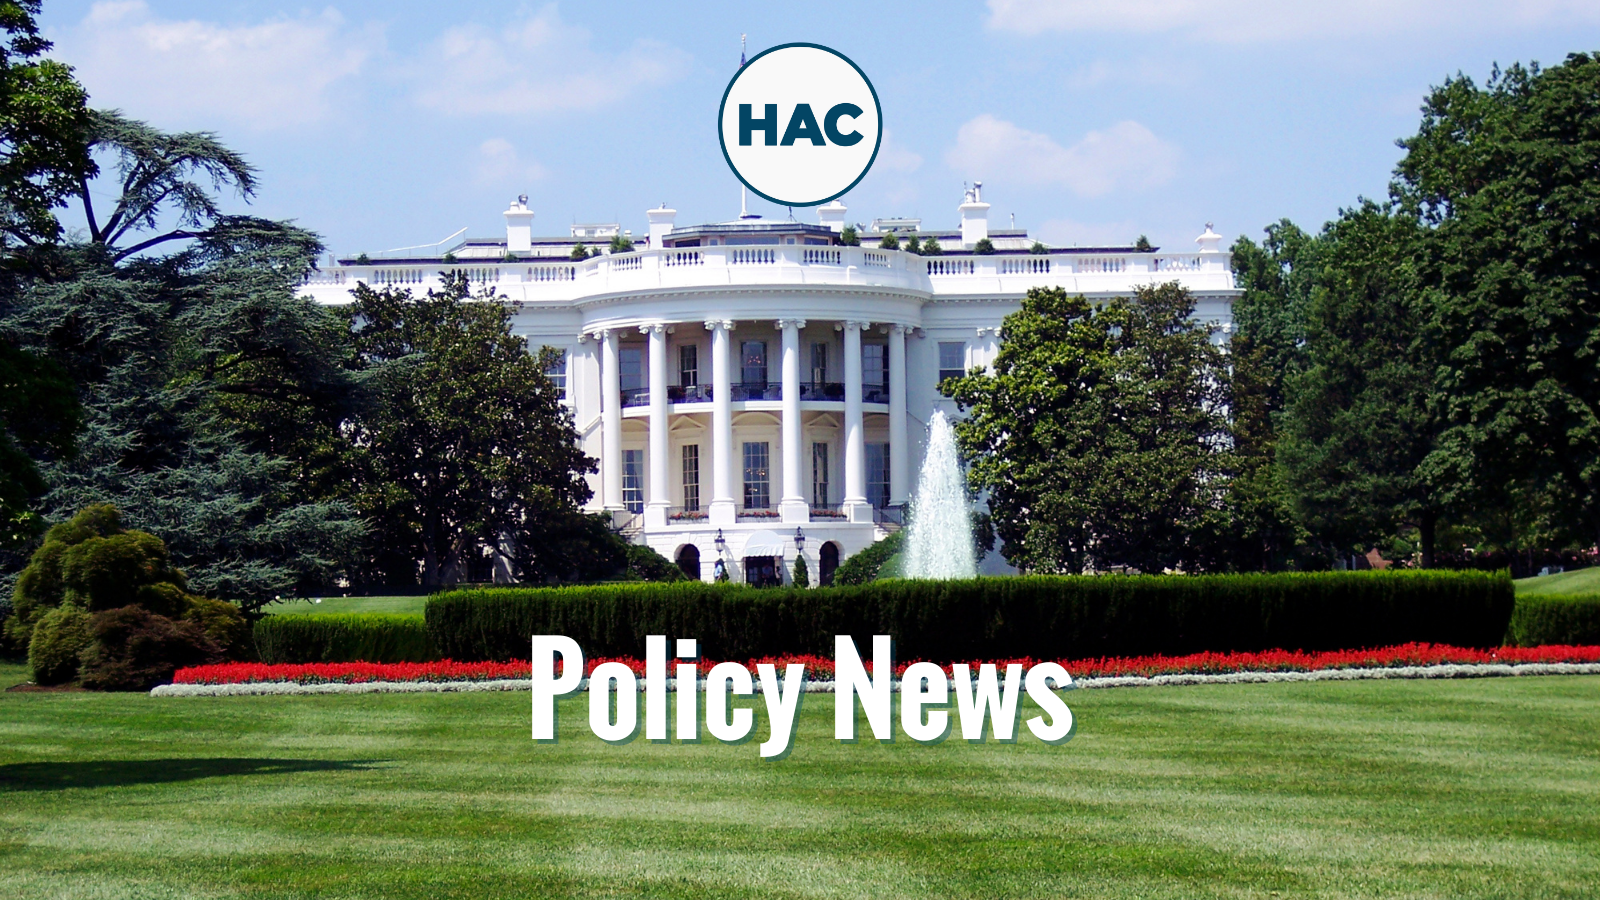 Policy News from the Administration